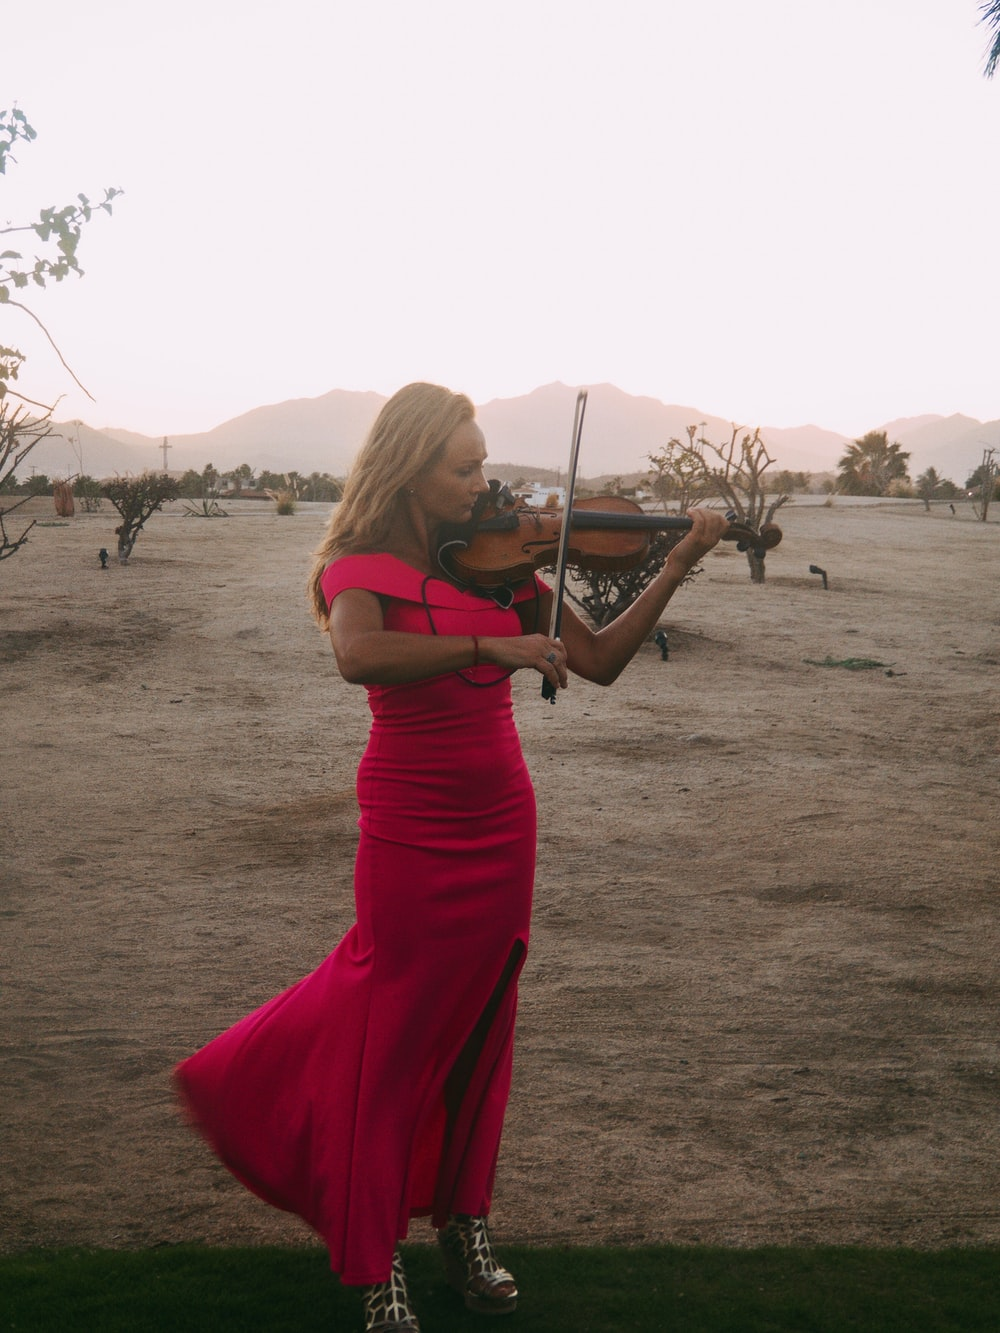 woman standing and playing violin on brown field